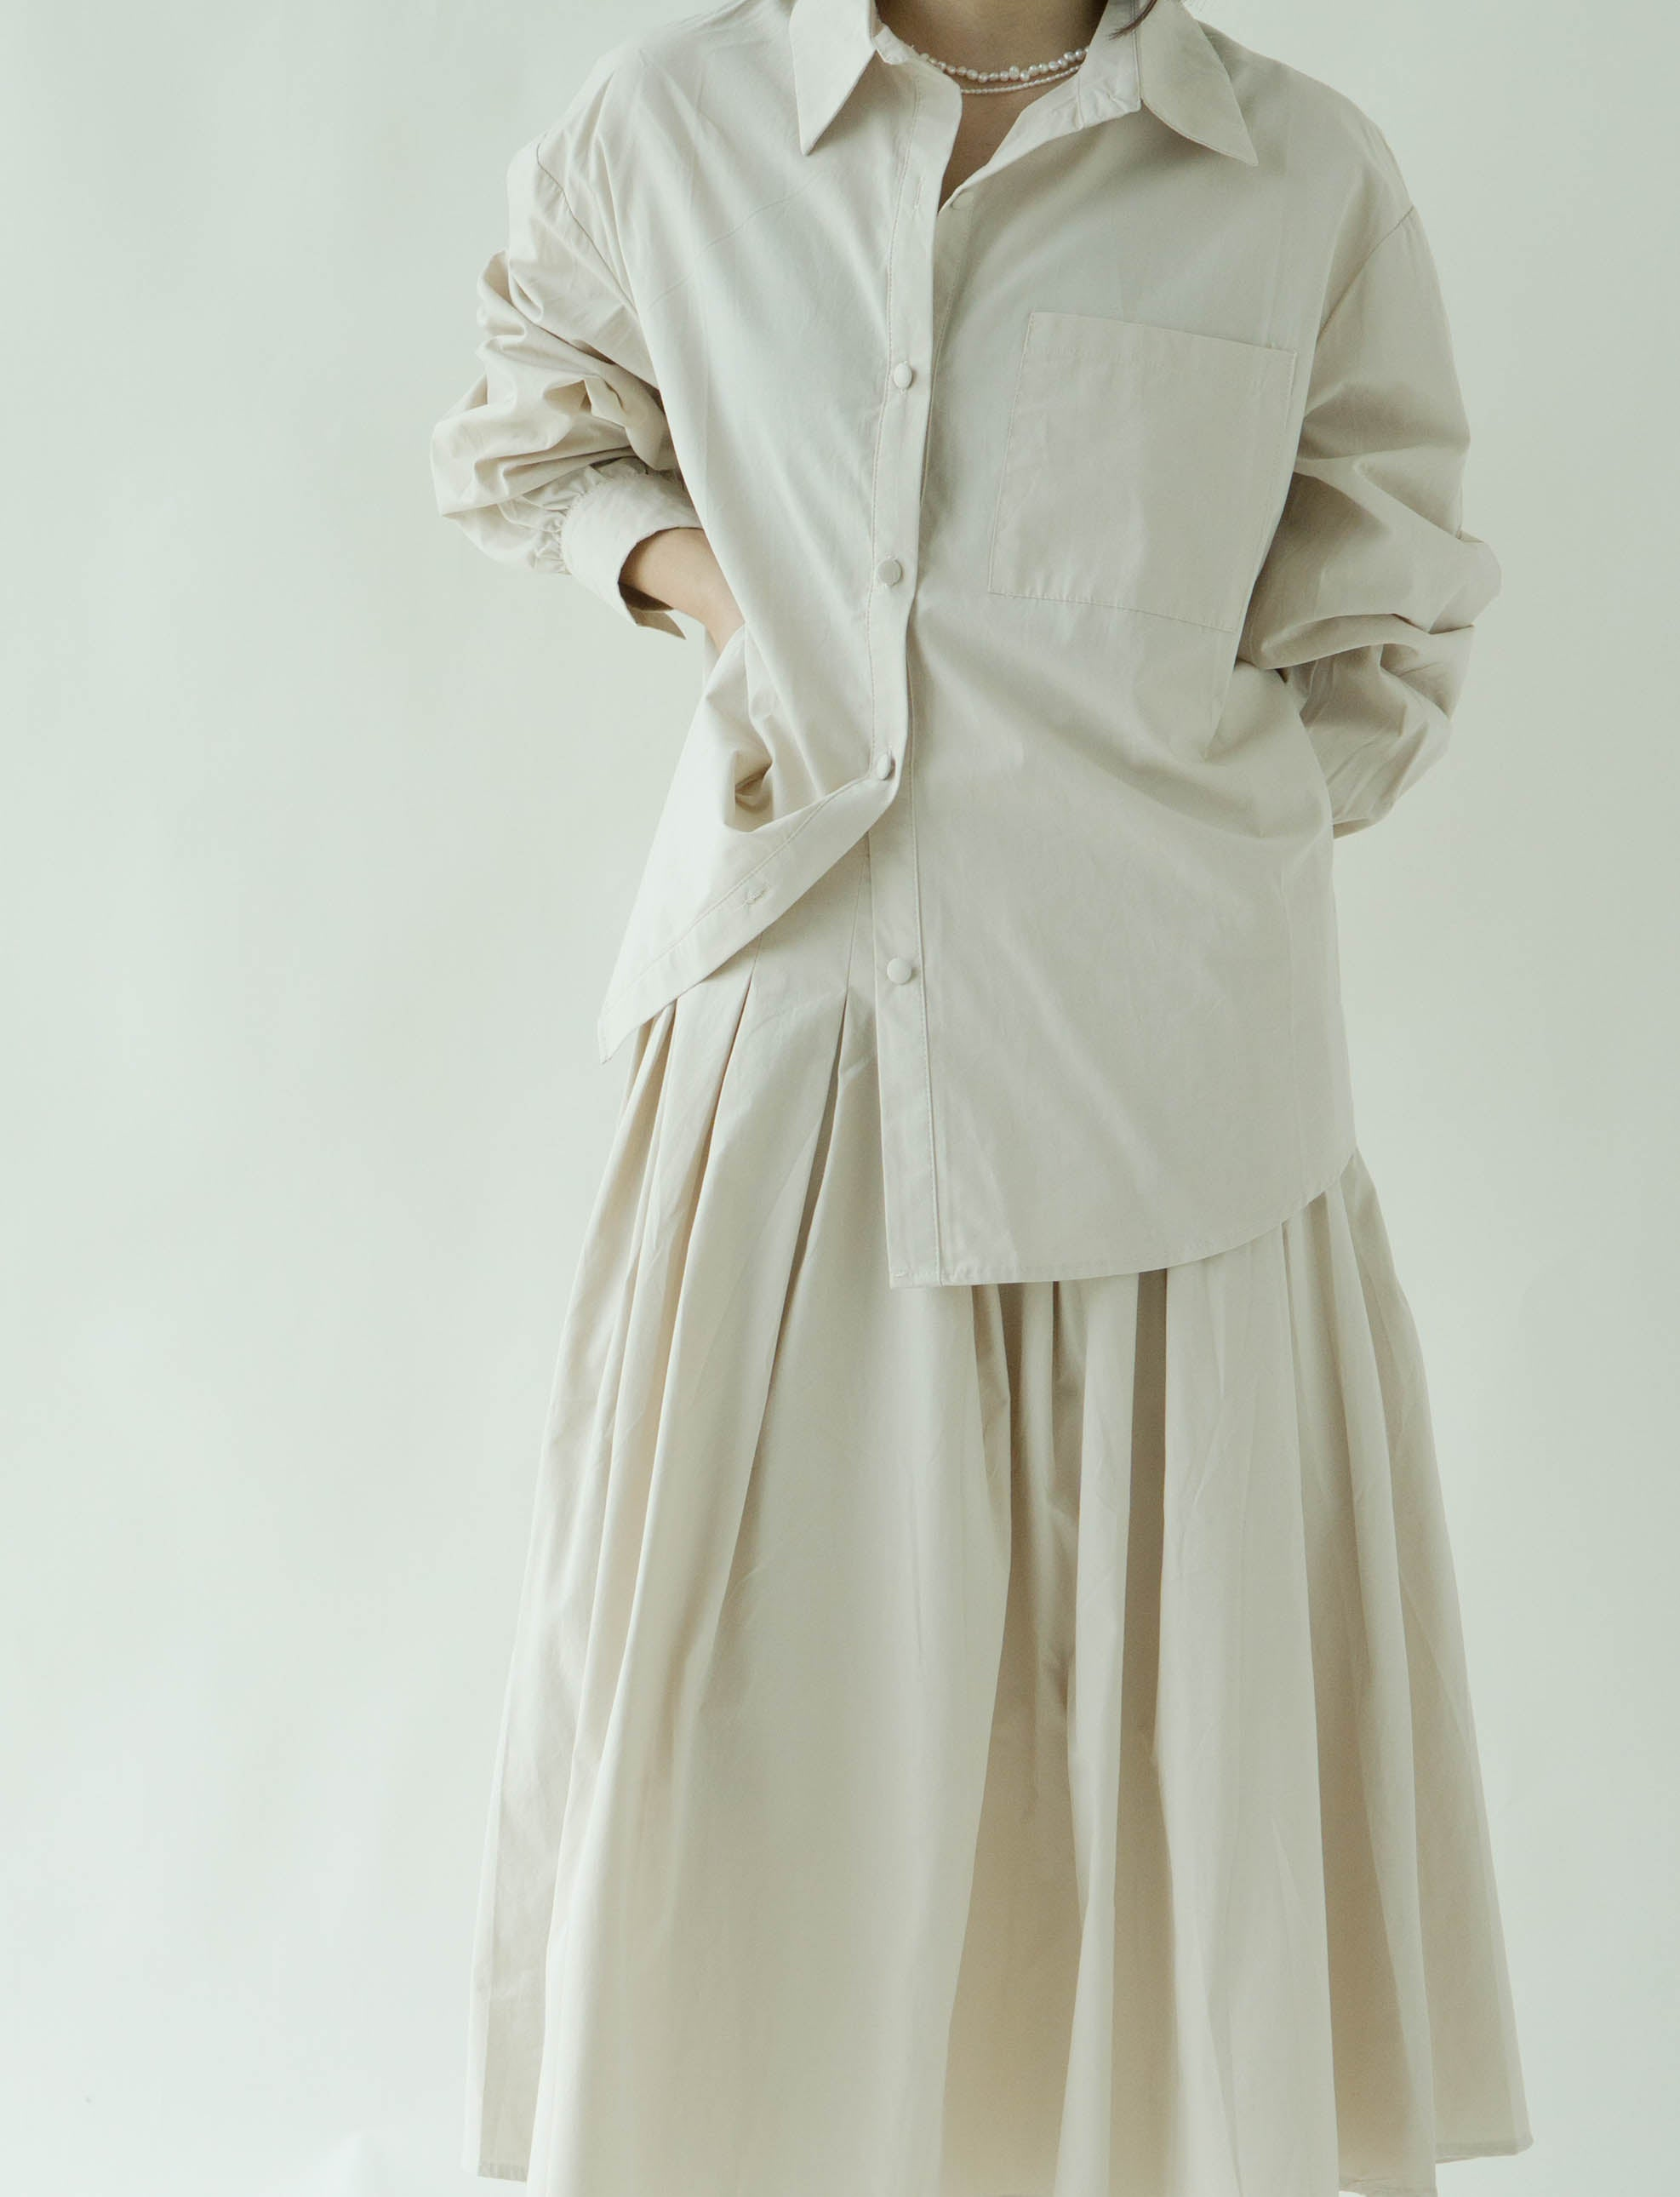 Lapel long sleeve shirt + high waist pleated skirt